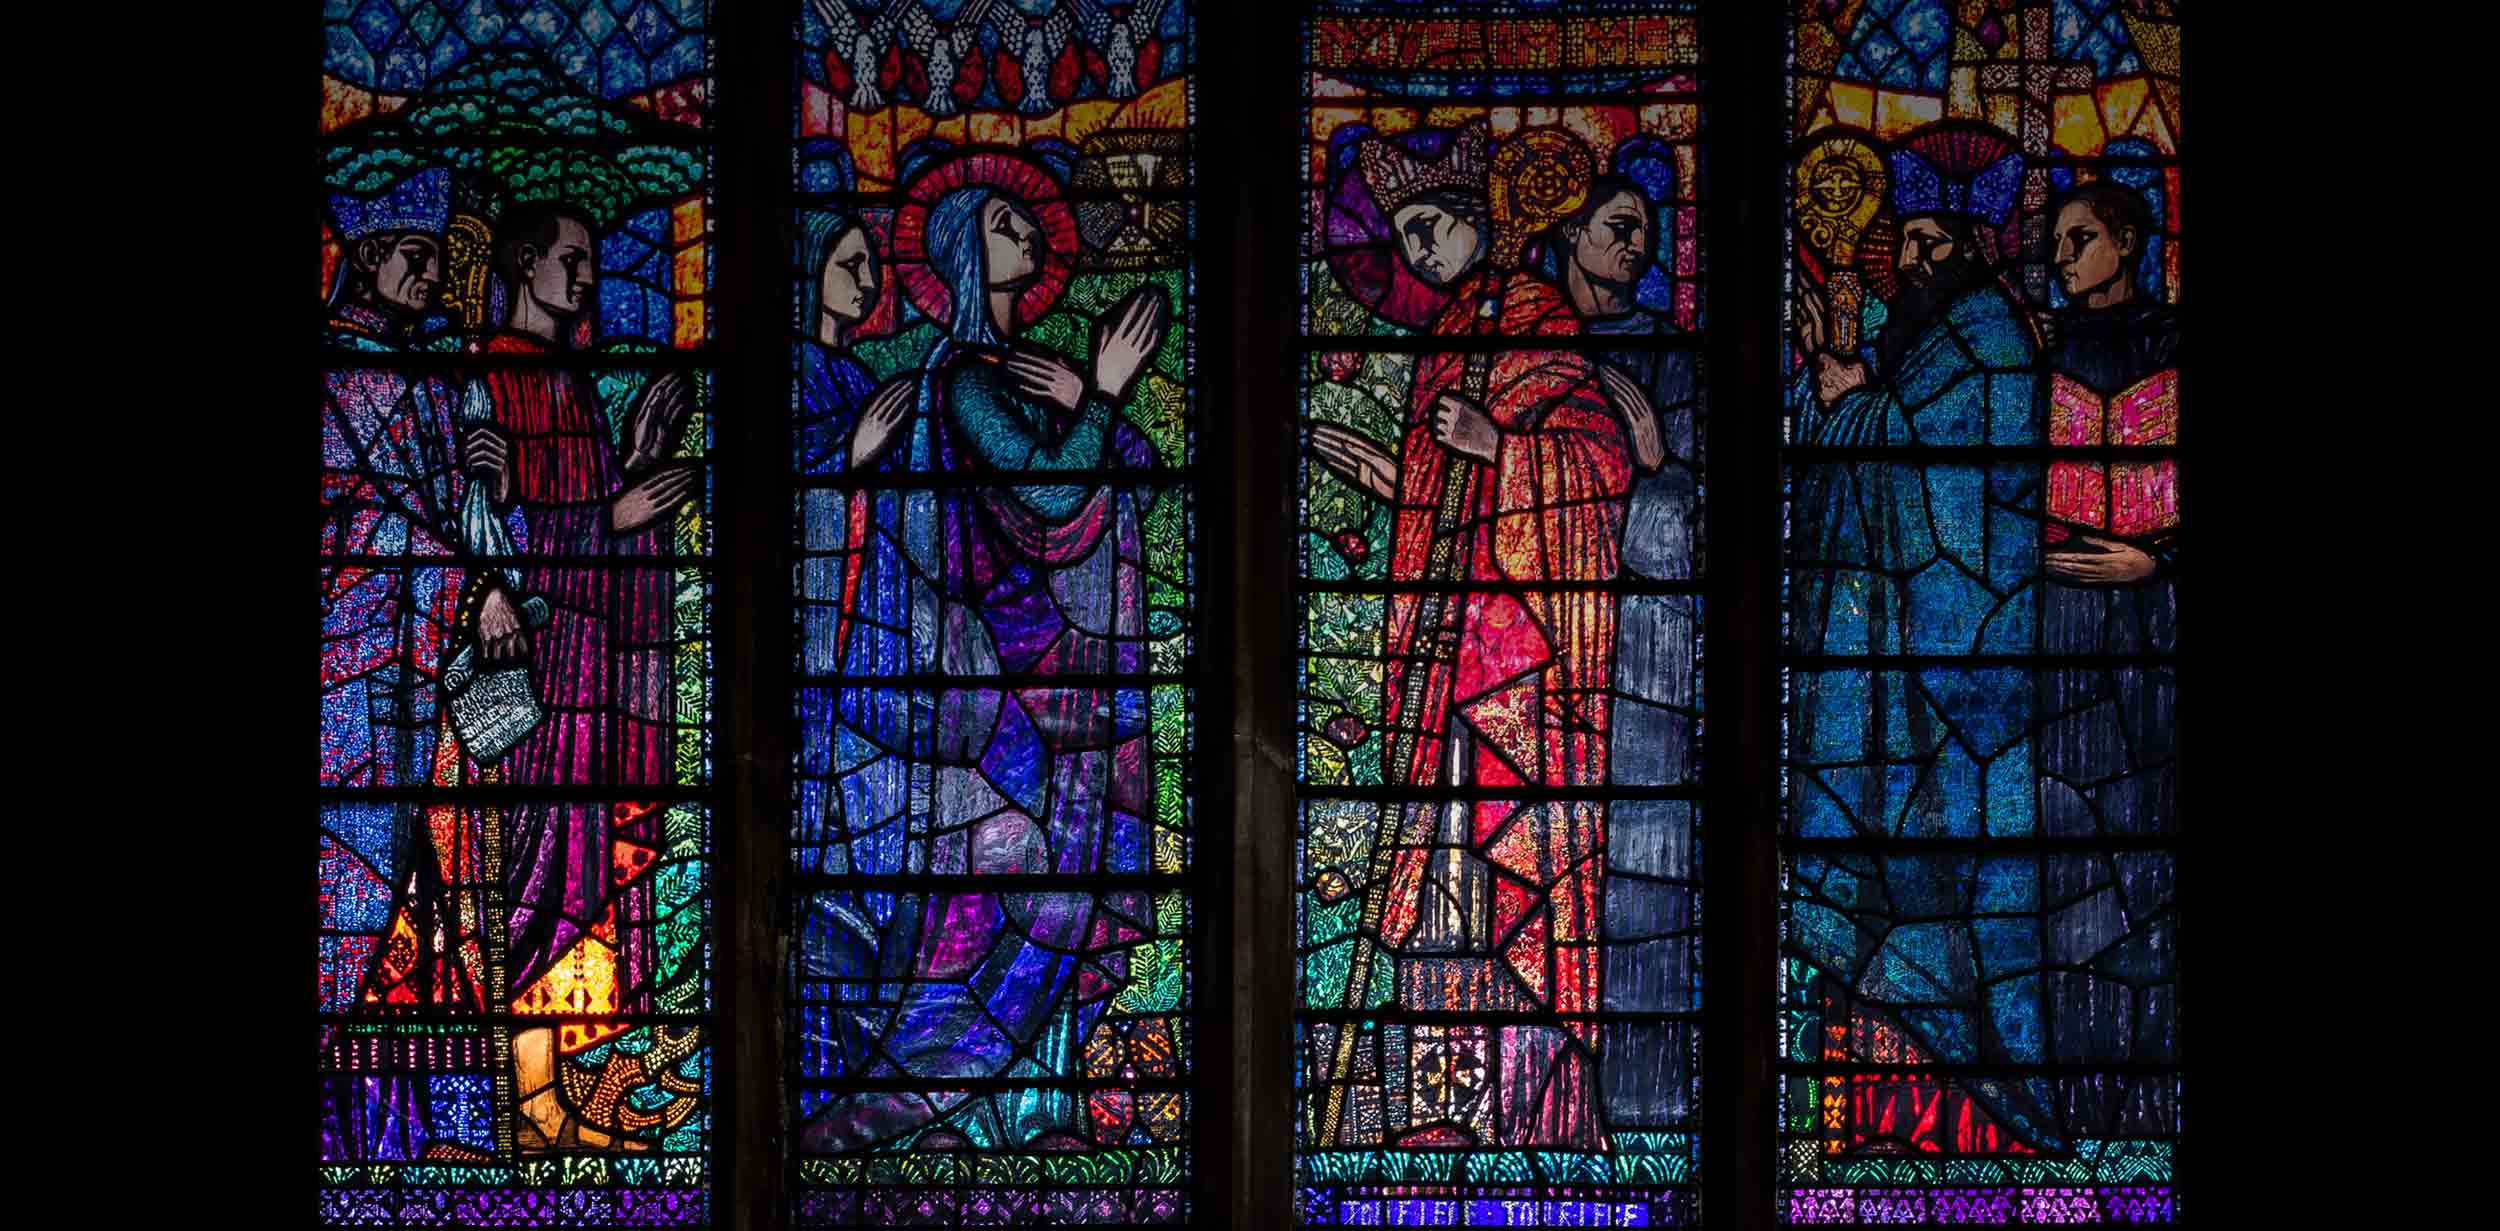 Stained glass window by Michael Healy, Augustinian Church, Dublin.